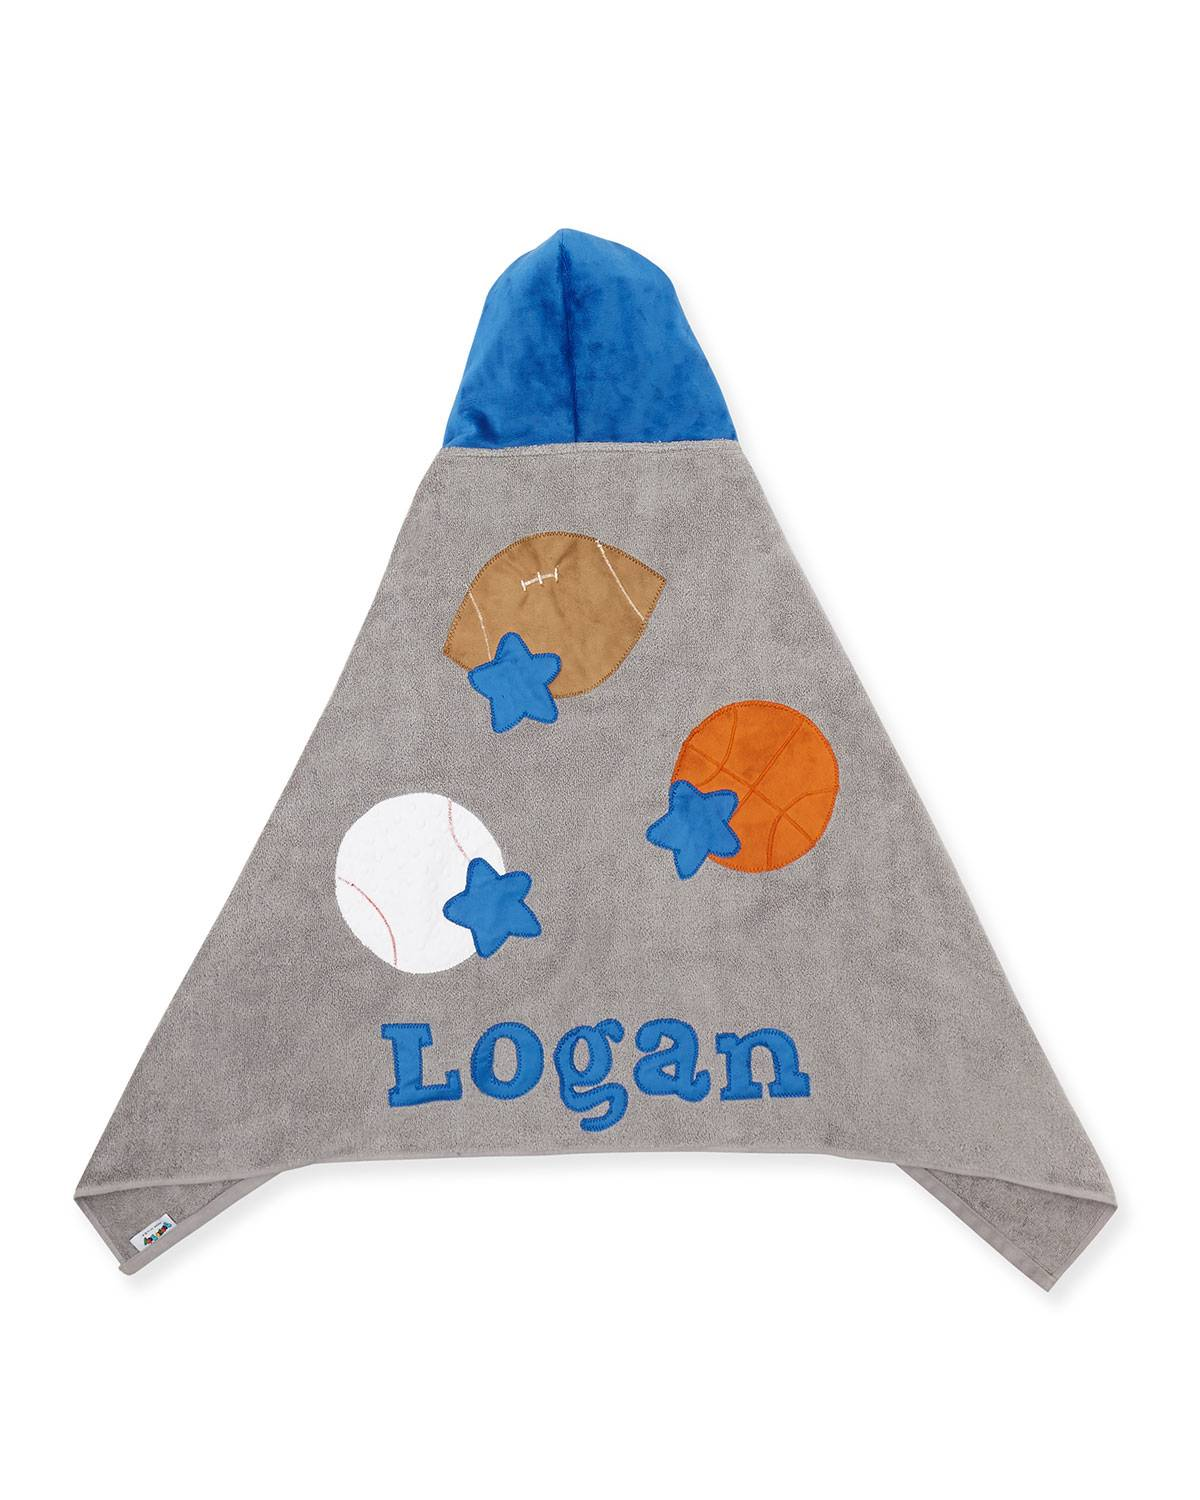 Boogie Baby Personalized Good Sport Hooded Towel, Gray/Blue - Size: male